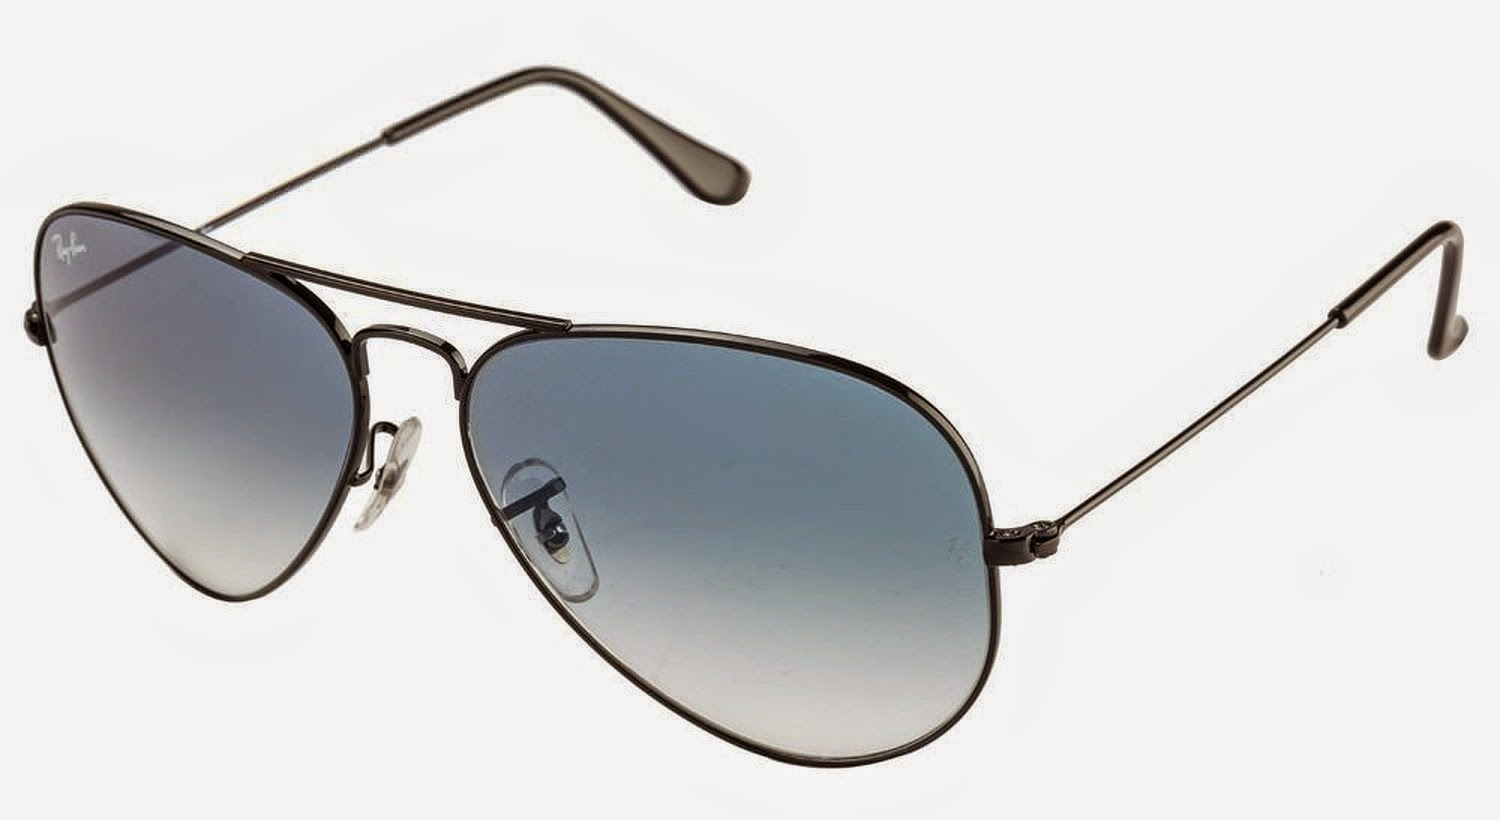 discount designer glasses jrwc  18 2% Discount Ray-Ban RB3025/002/3F5814 at Rs5850 + Free rs